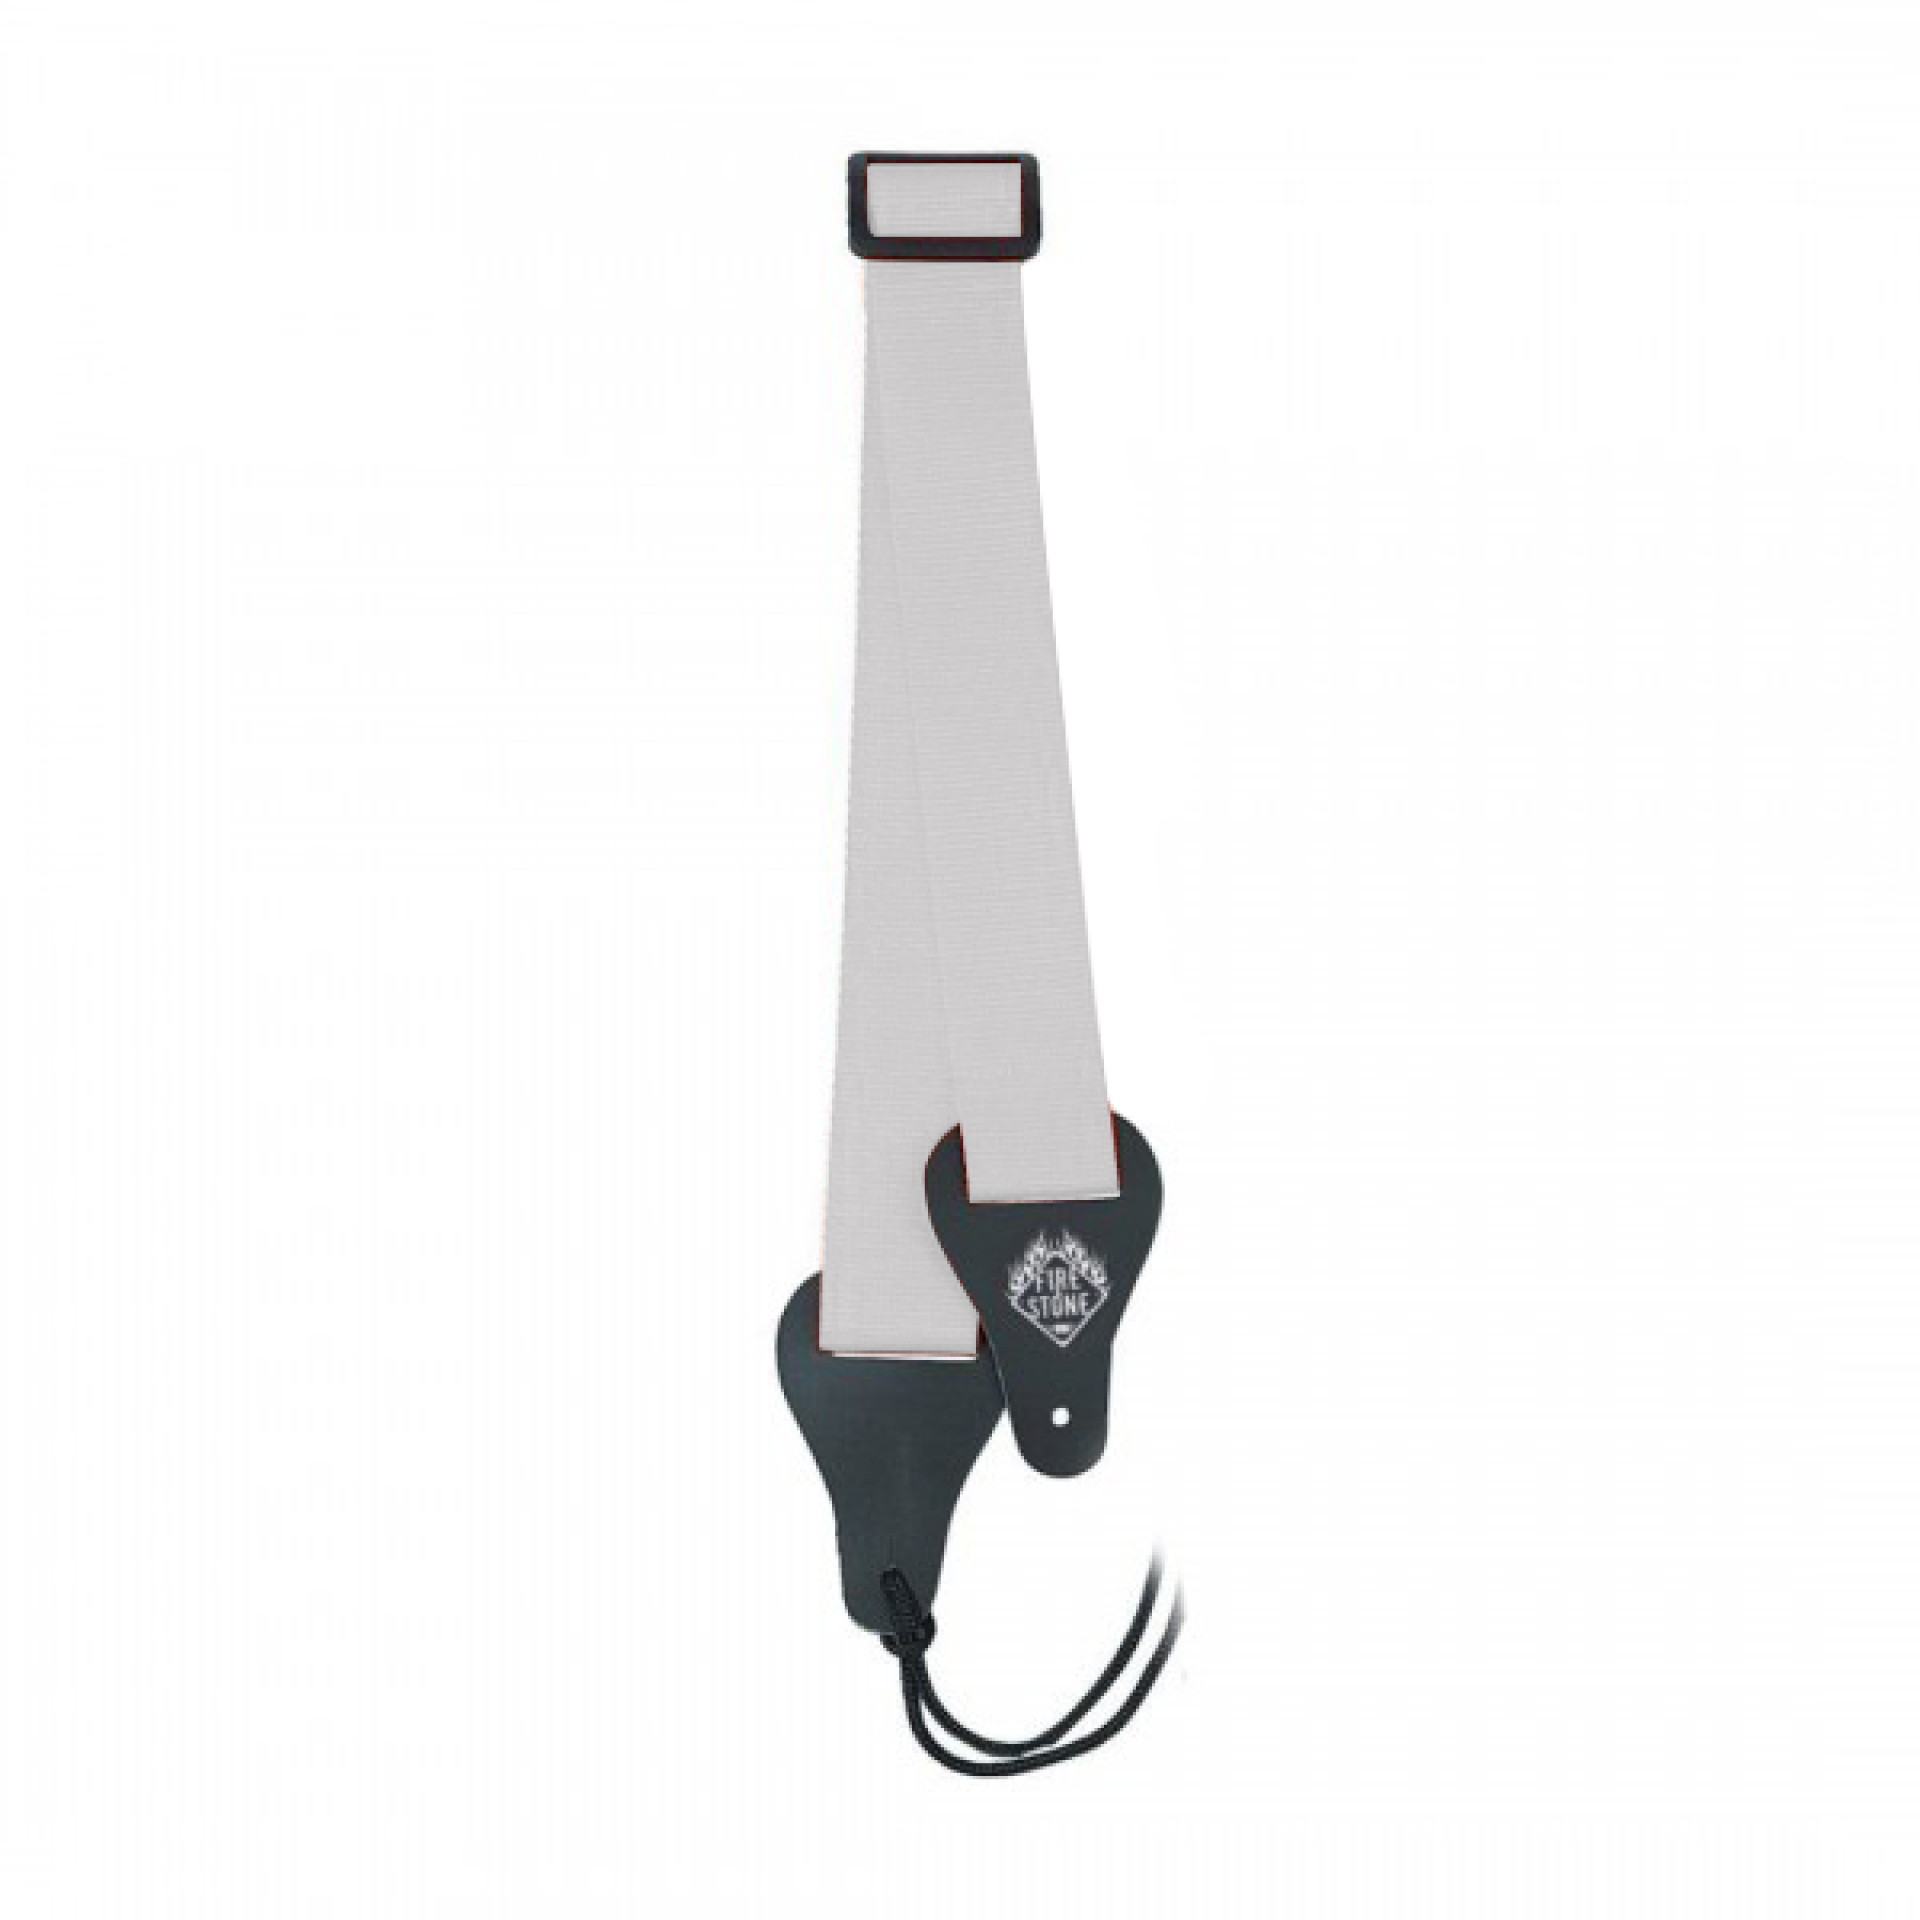 GEWA GUITAR SHOULDER STRAP - White